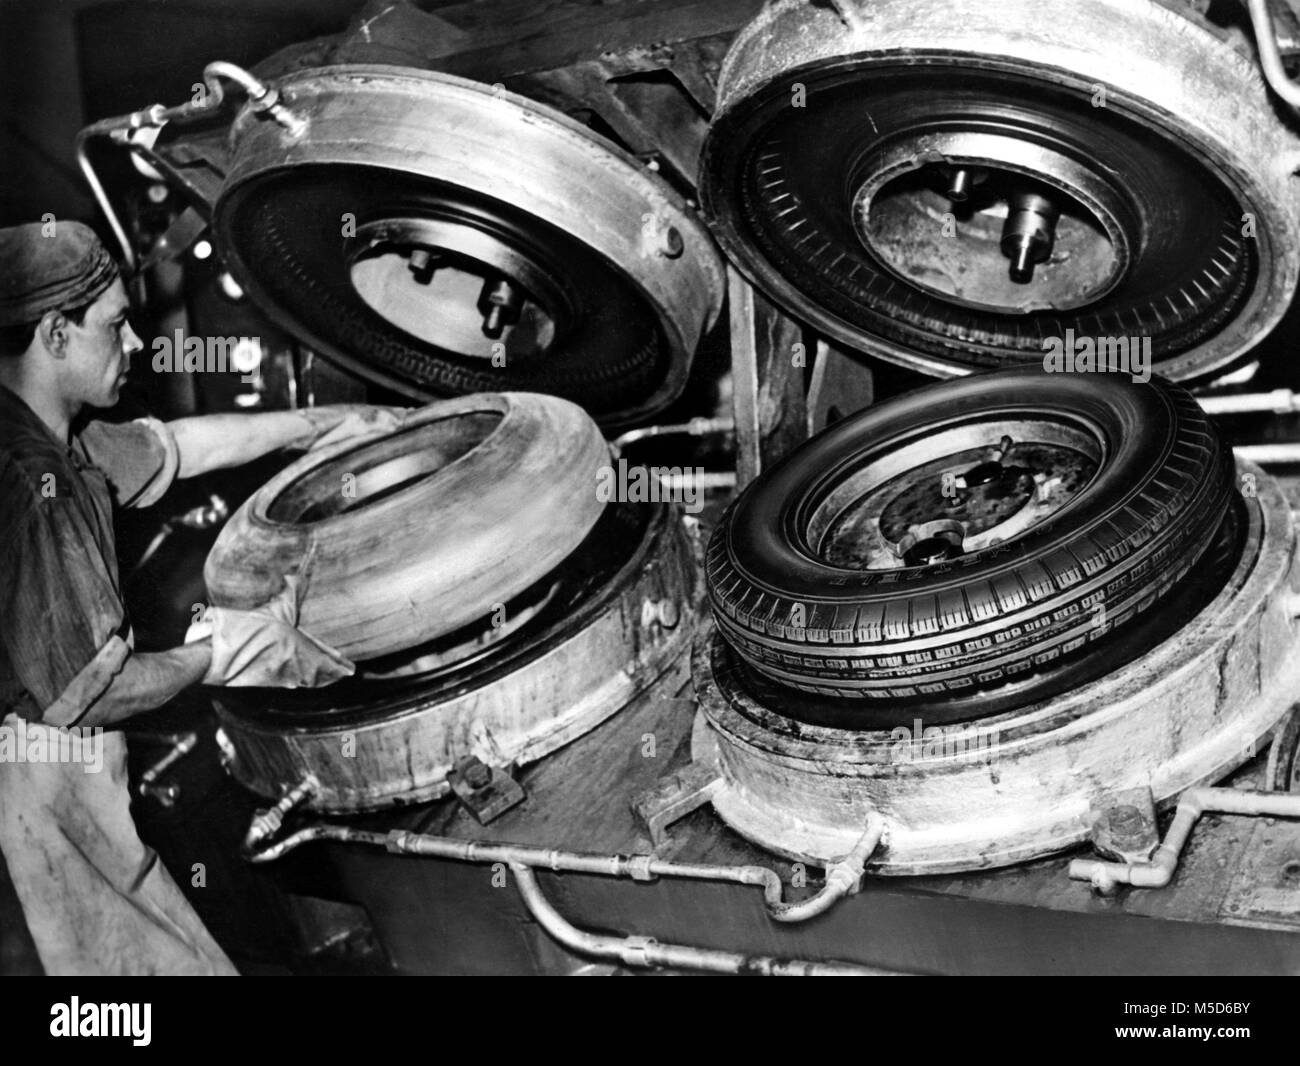 Industry, car tires, production, fresh punched tires, 1950s, Germany - Stock Image